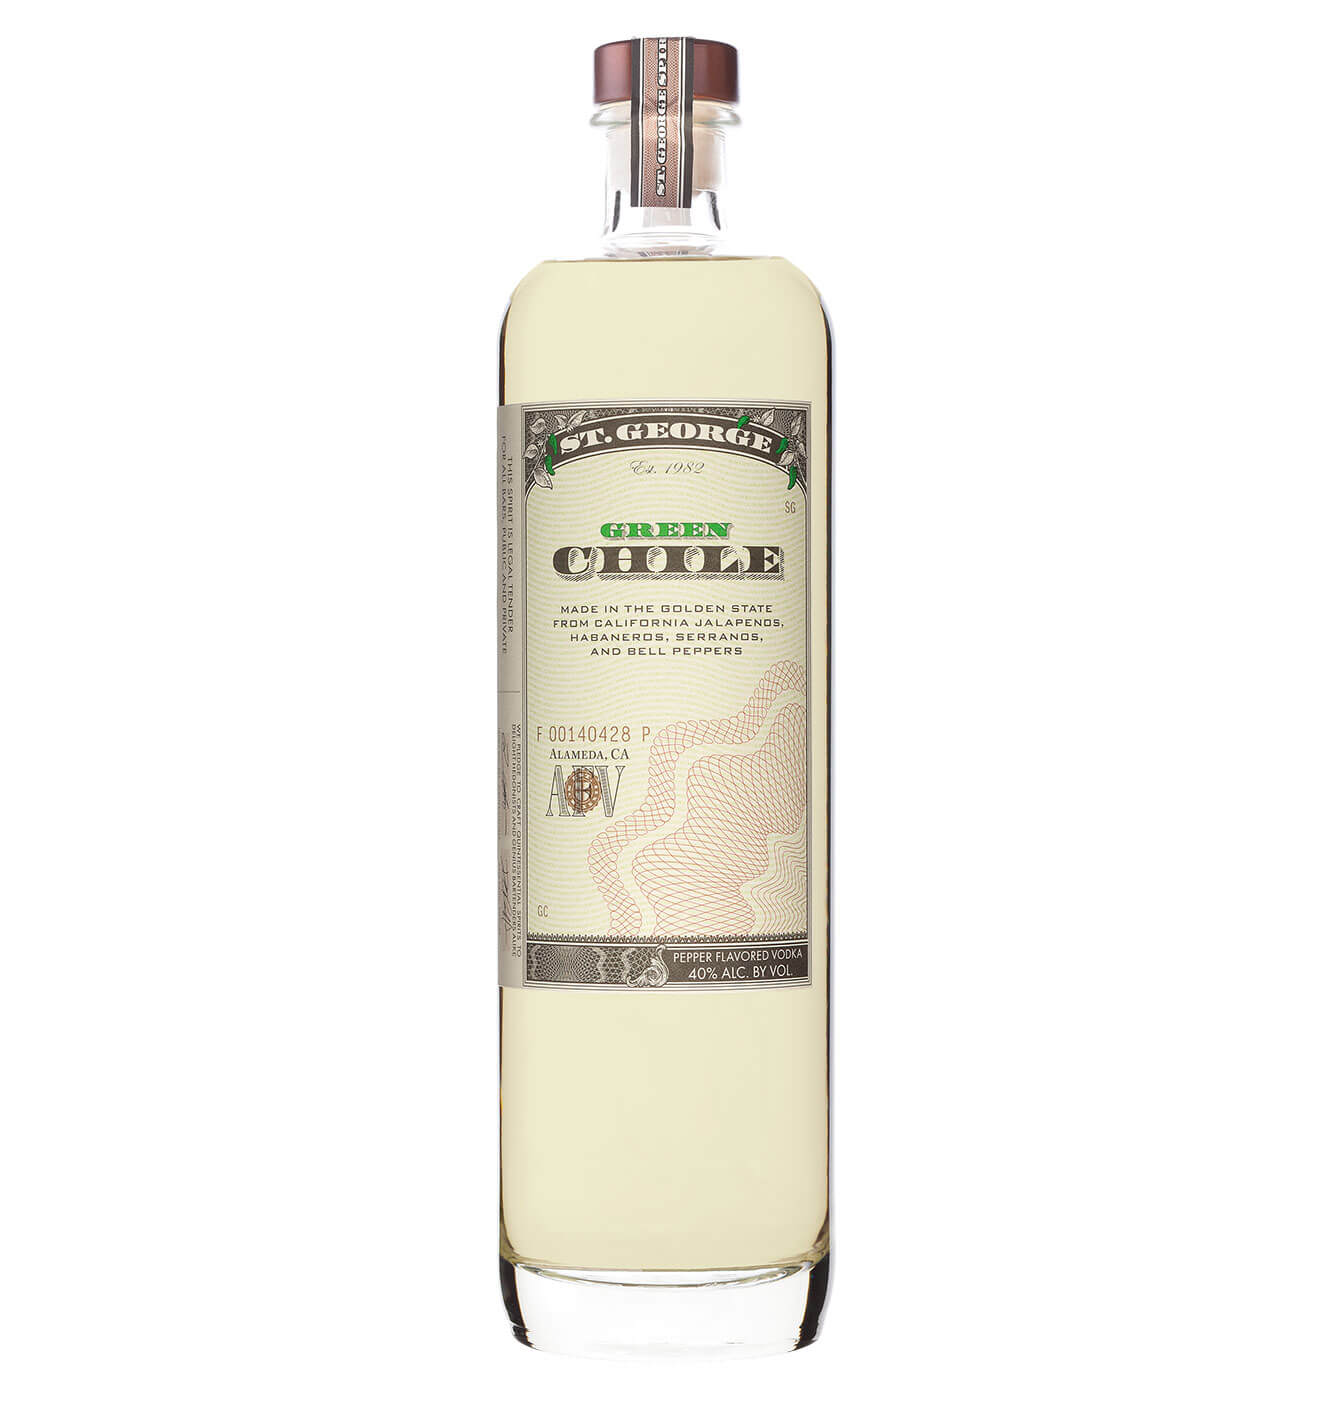 St. George Spirits Green Chile Vodka, bottle on white